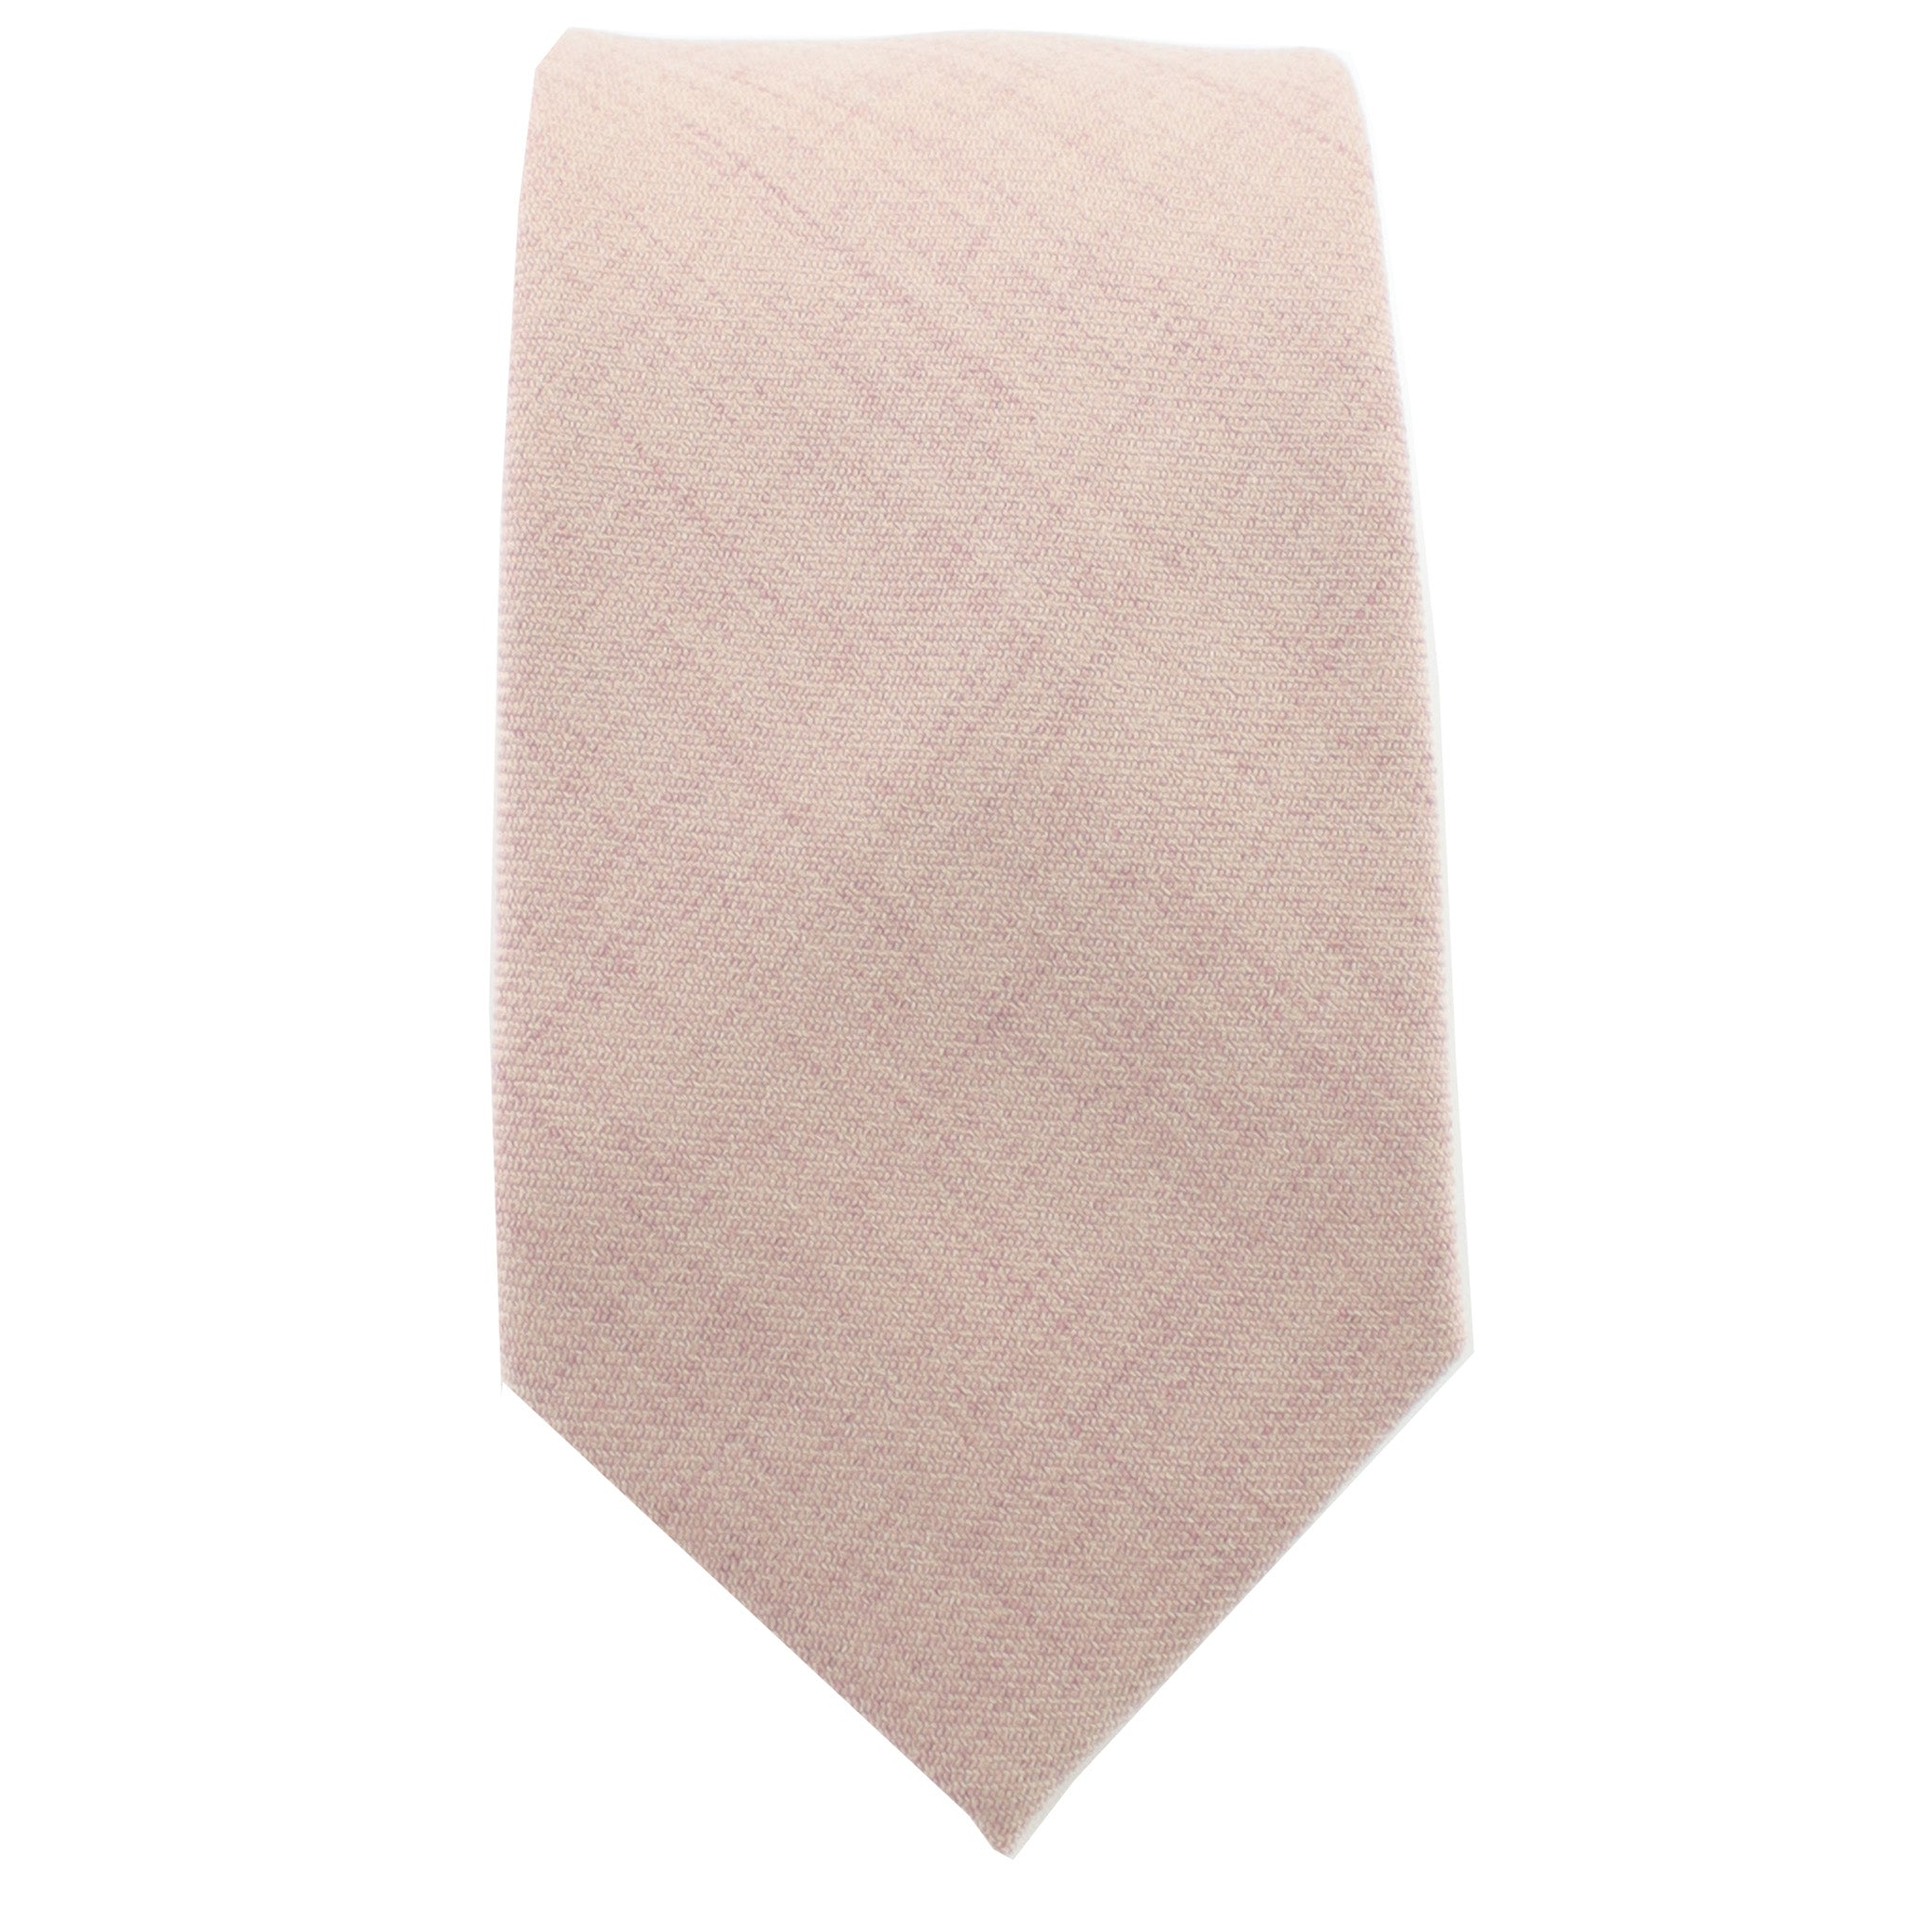 Cotton Mauve Tie from DIBI